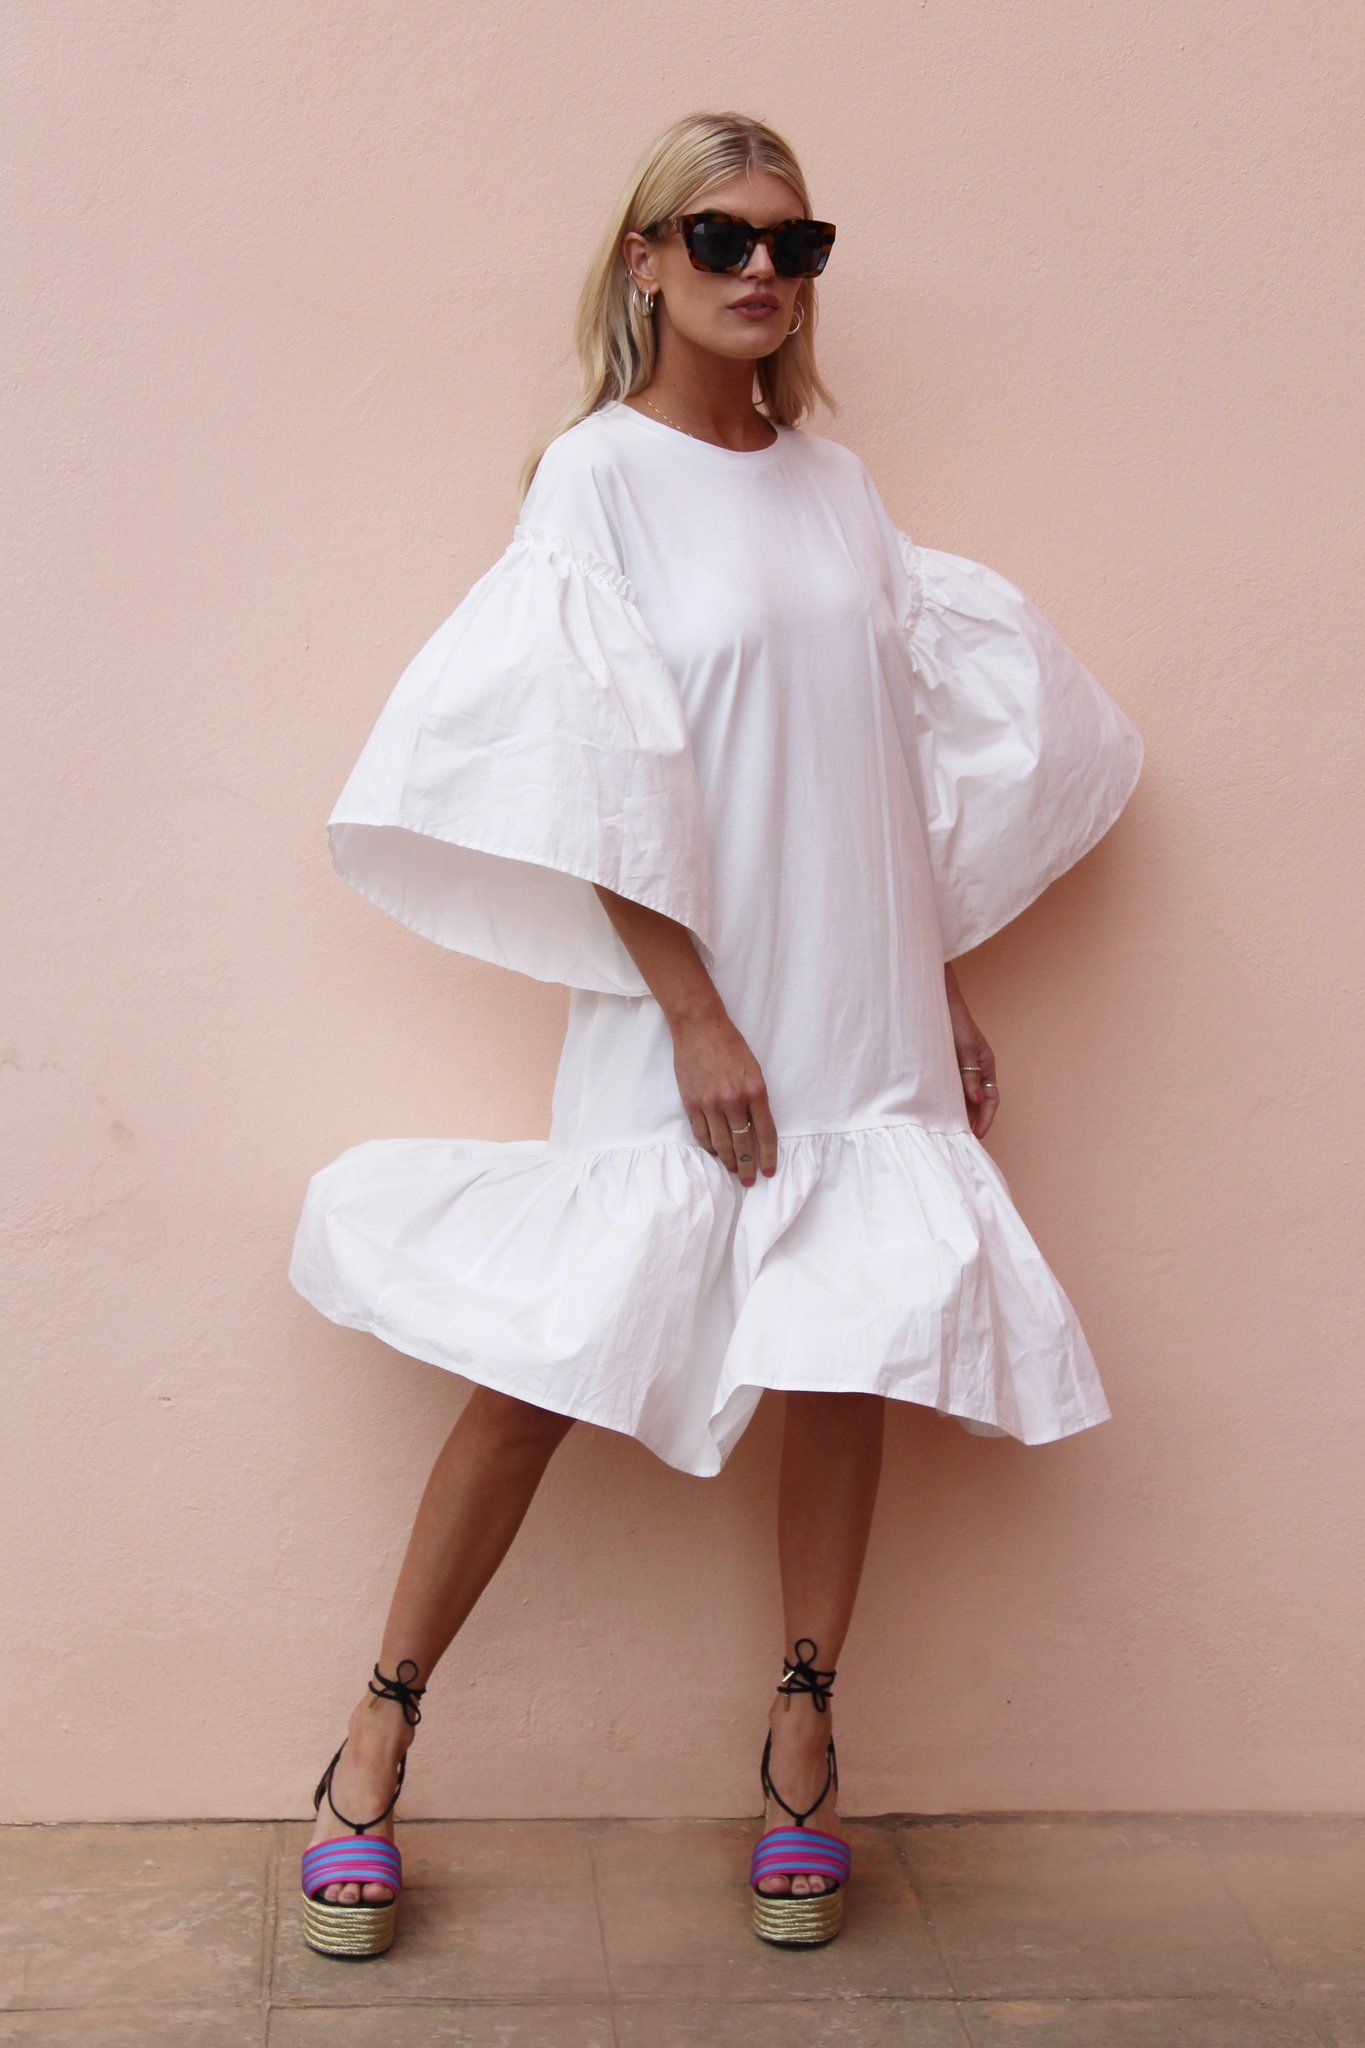 Margot White Never Fully Dressed Little White Dresses Fashion Colourful Outfits